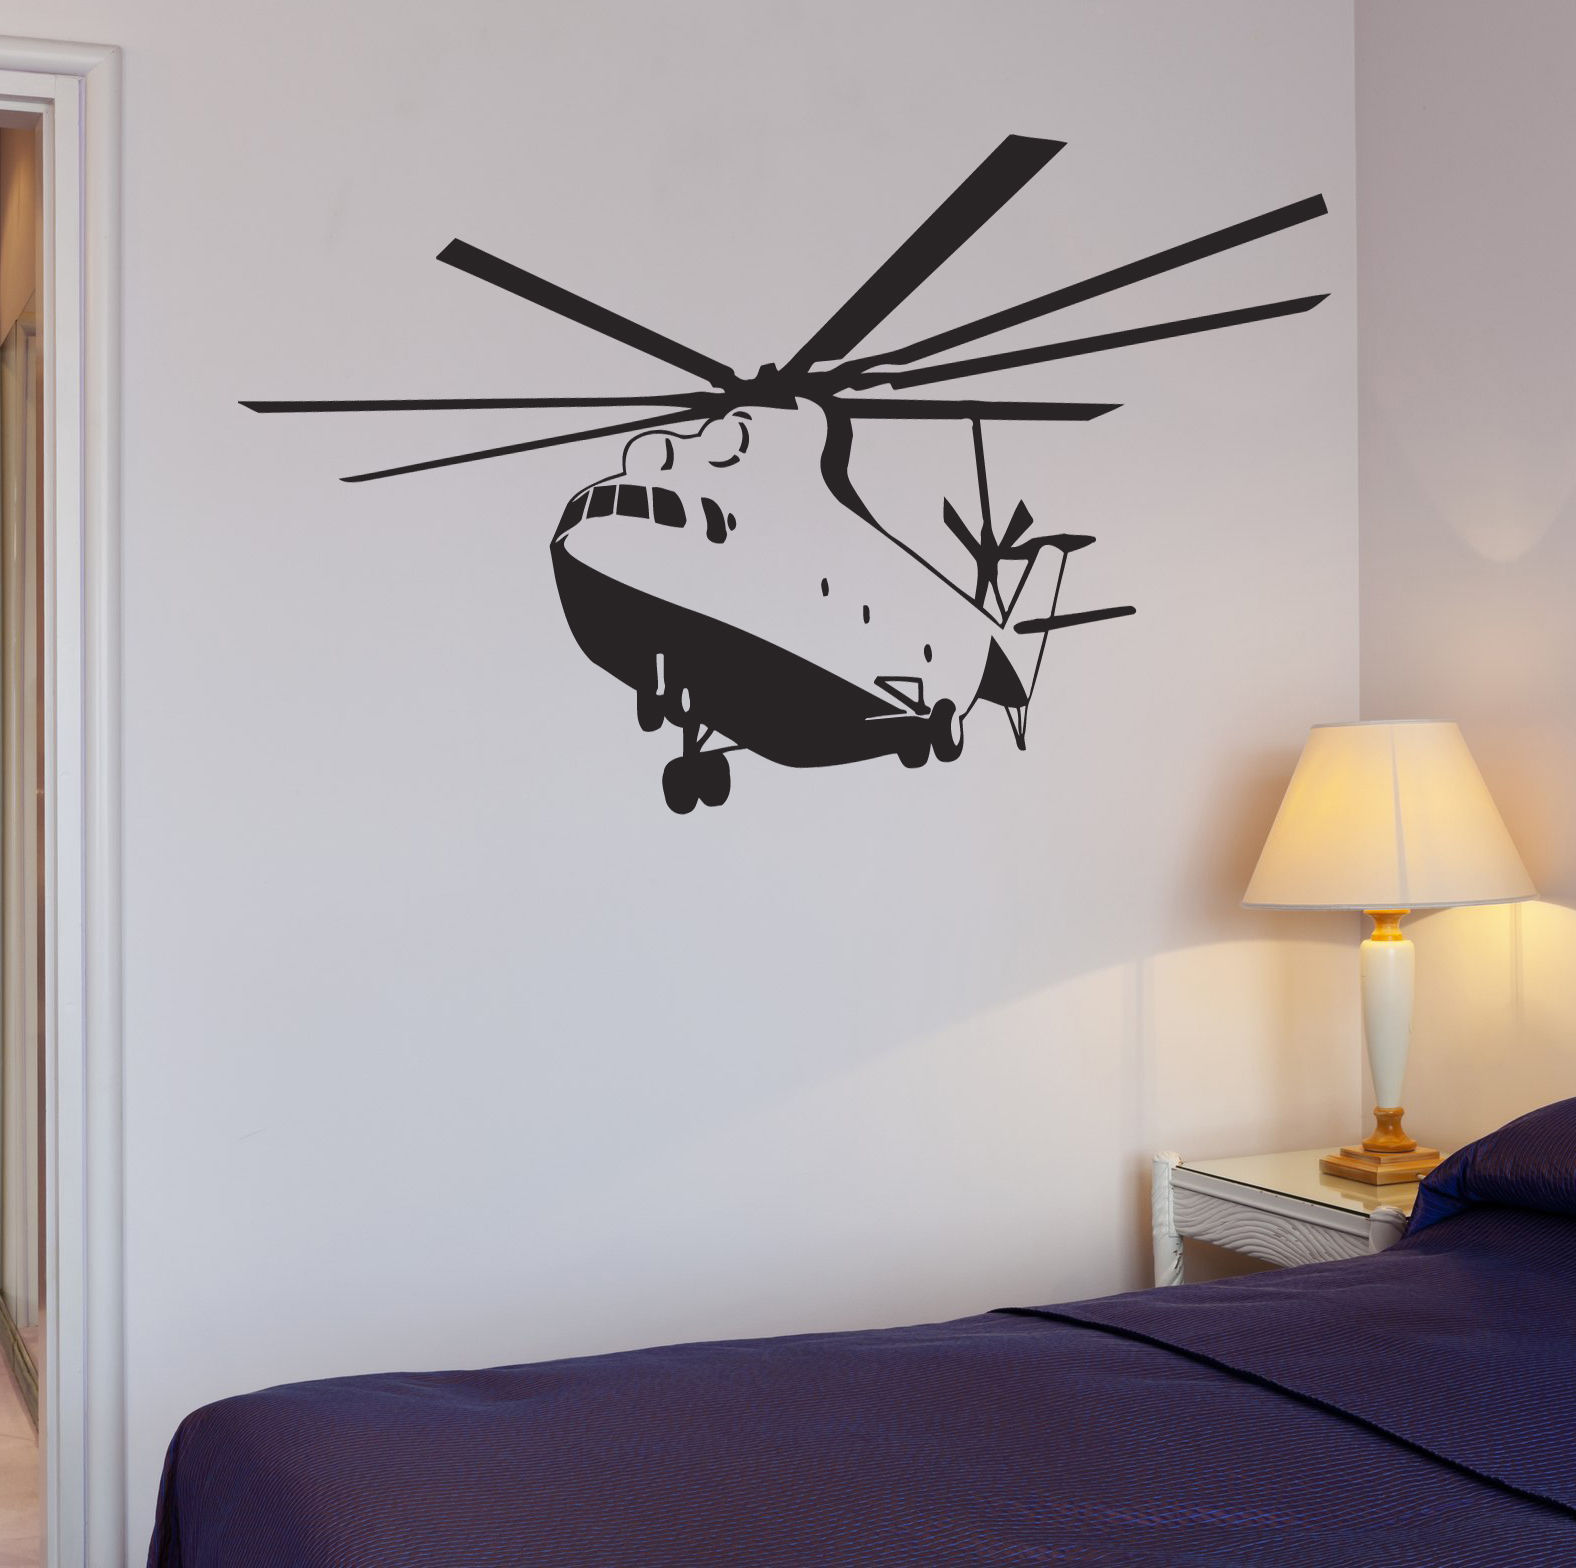 2016 new Helicopter Wall Decal Apache Helicopter War Military Boys Room Vinyl Stickers free shipping